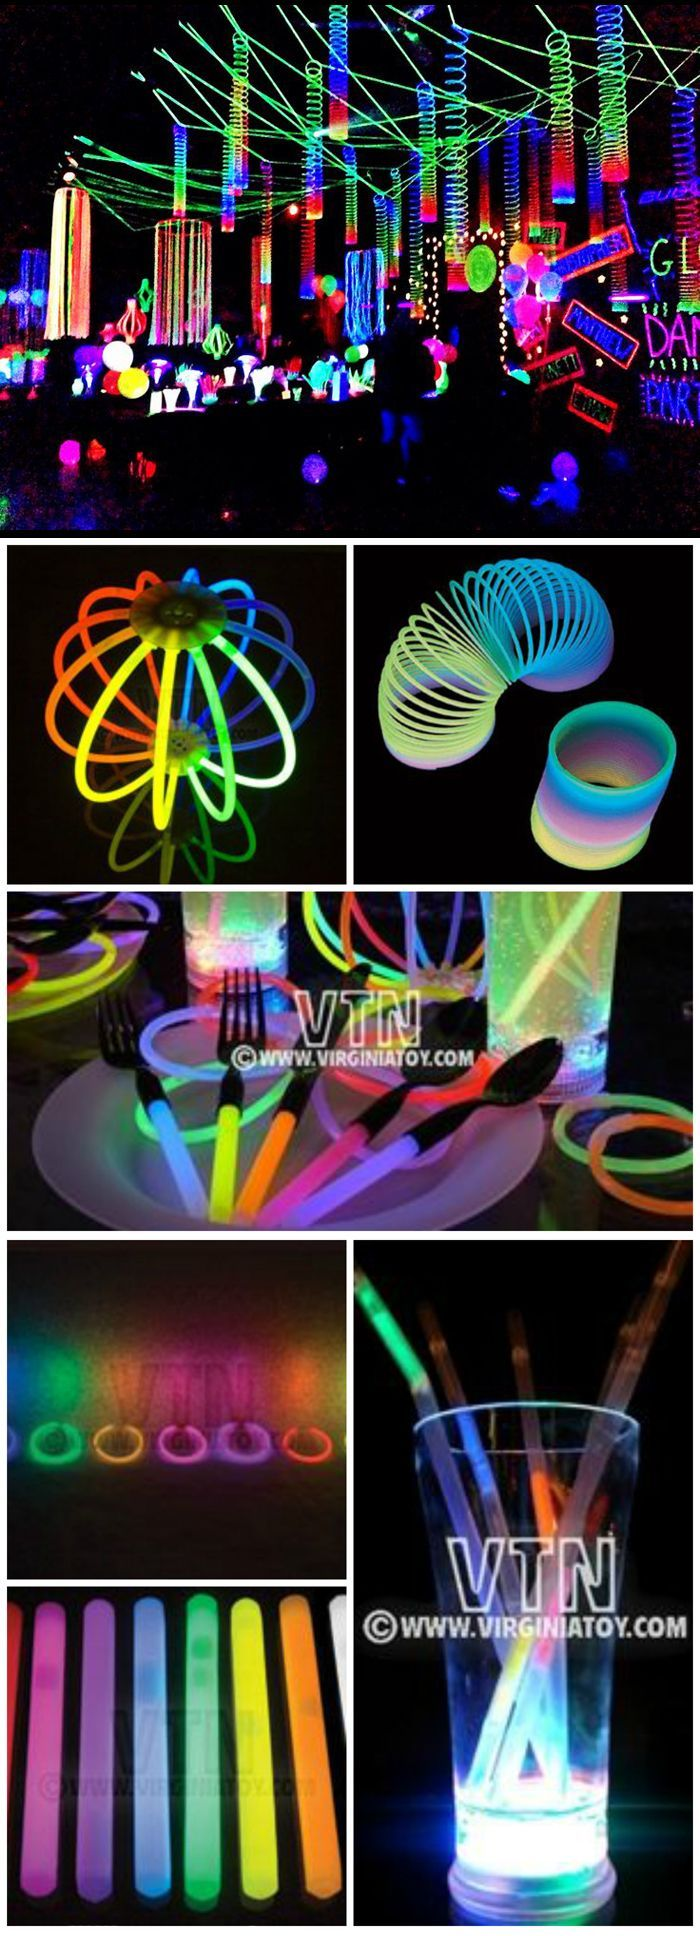 Halloween birthday party decoration ideas - Glorious Glow Party Glow In The Dark Spooktacular Halloween Party Decorations